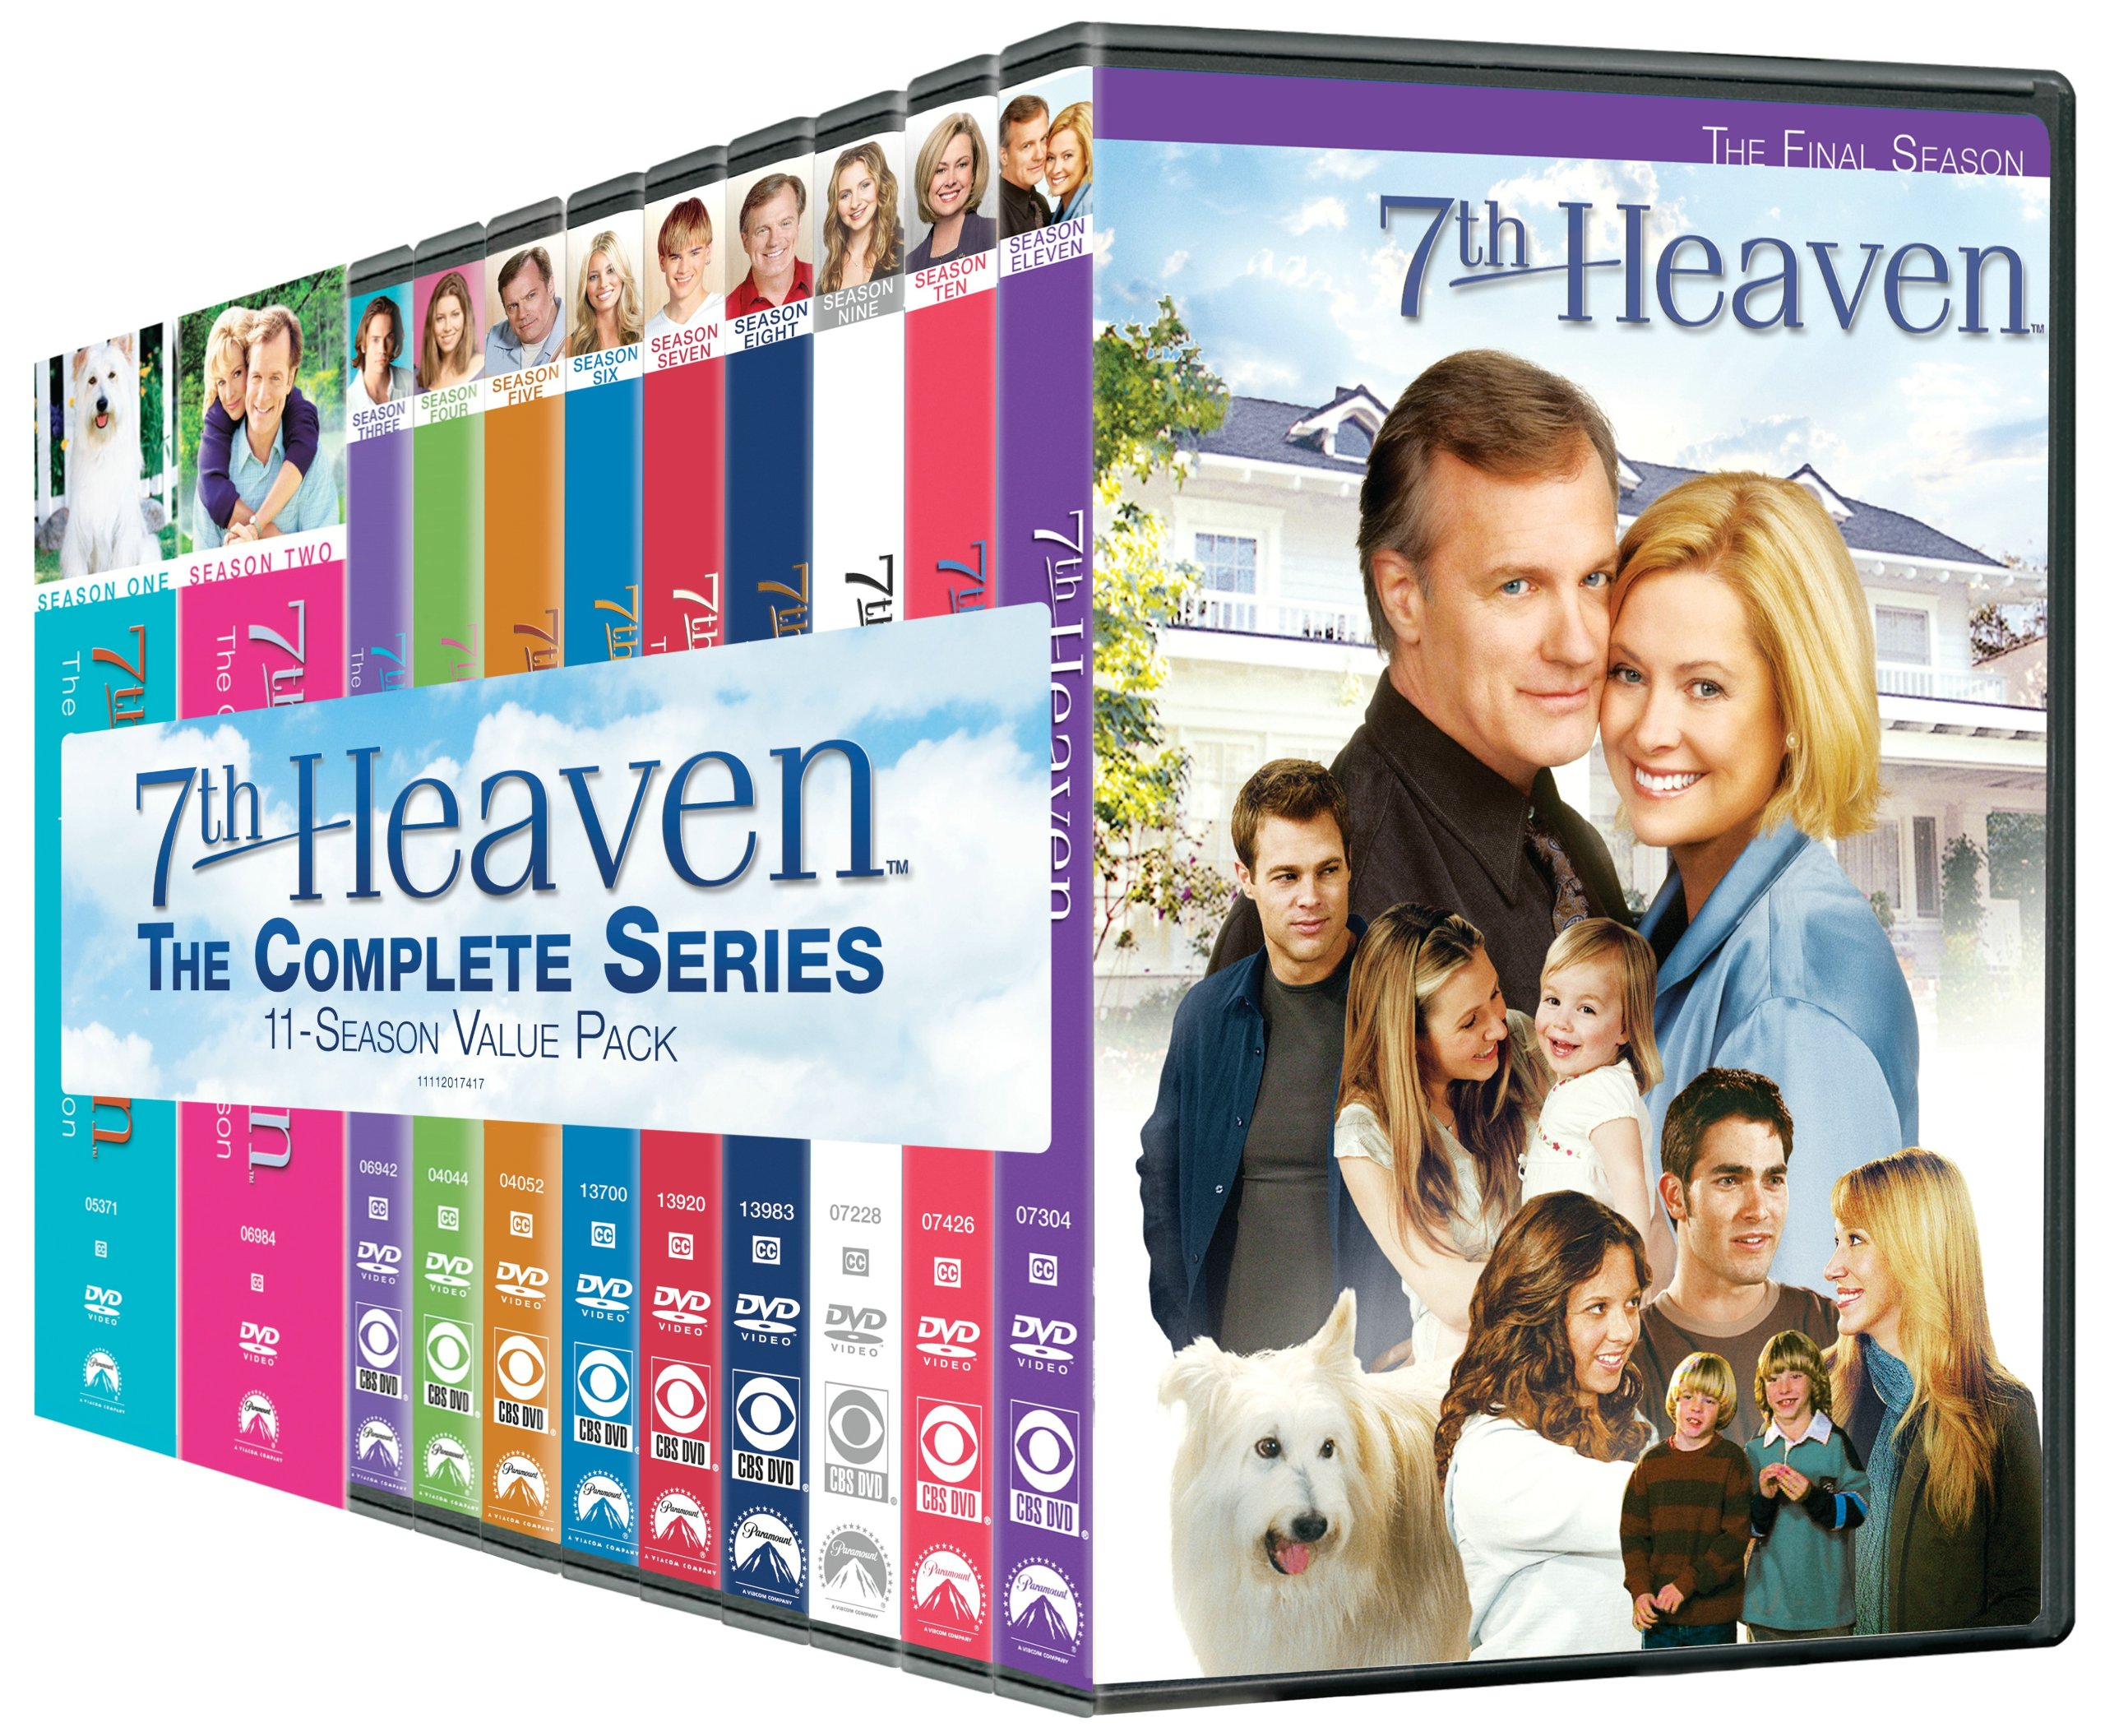 7th Heaven: The Complete Series by Paramount